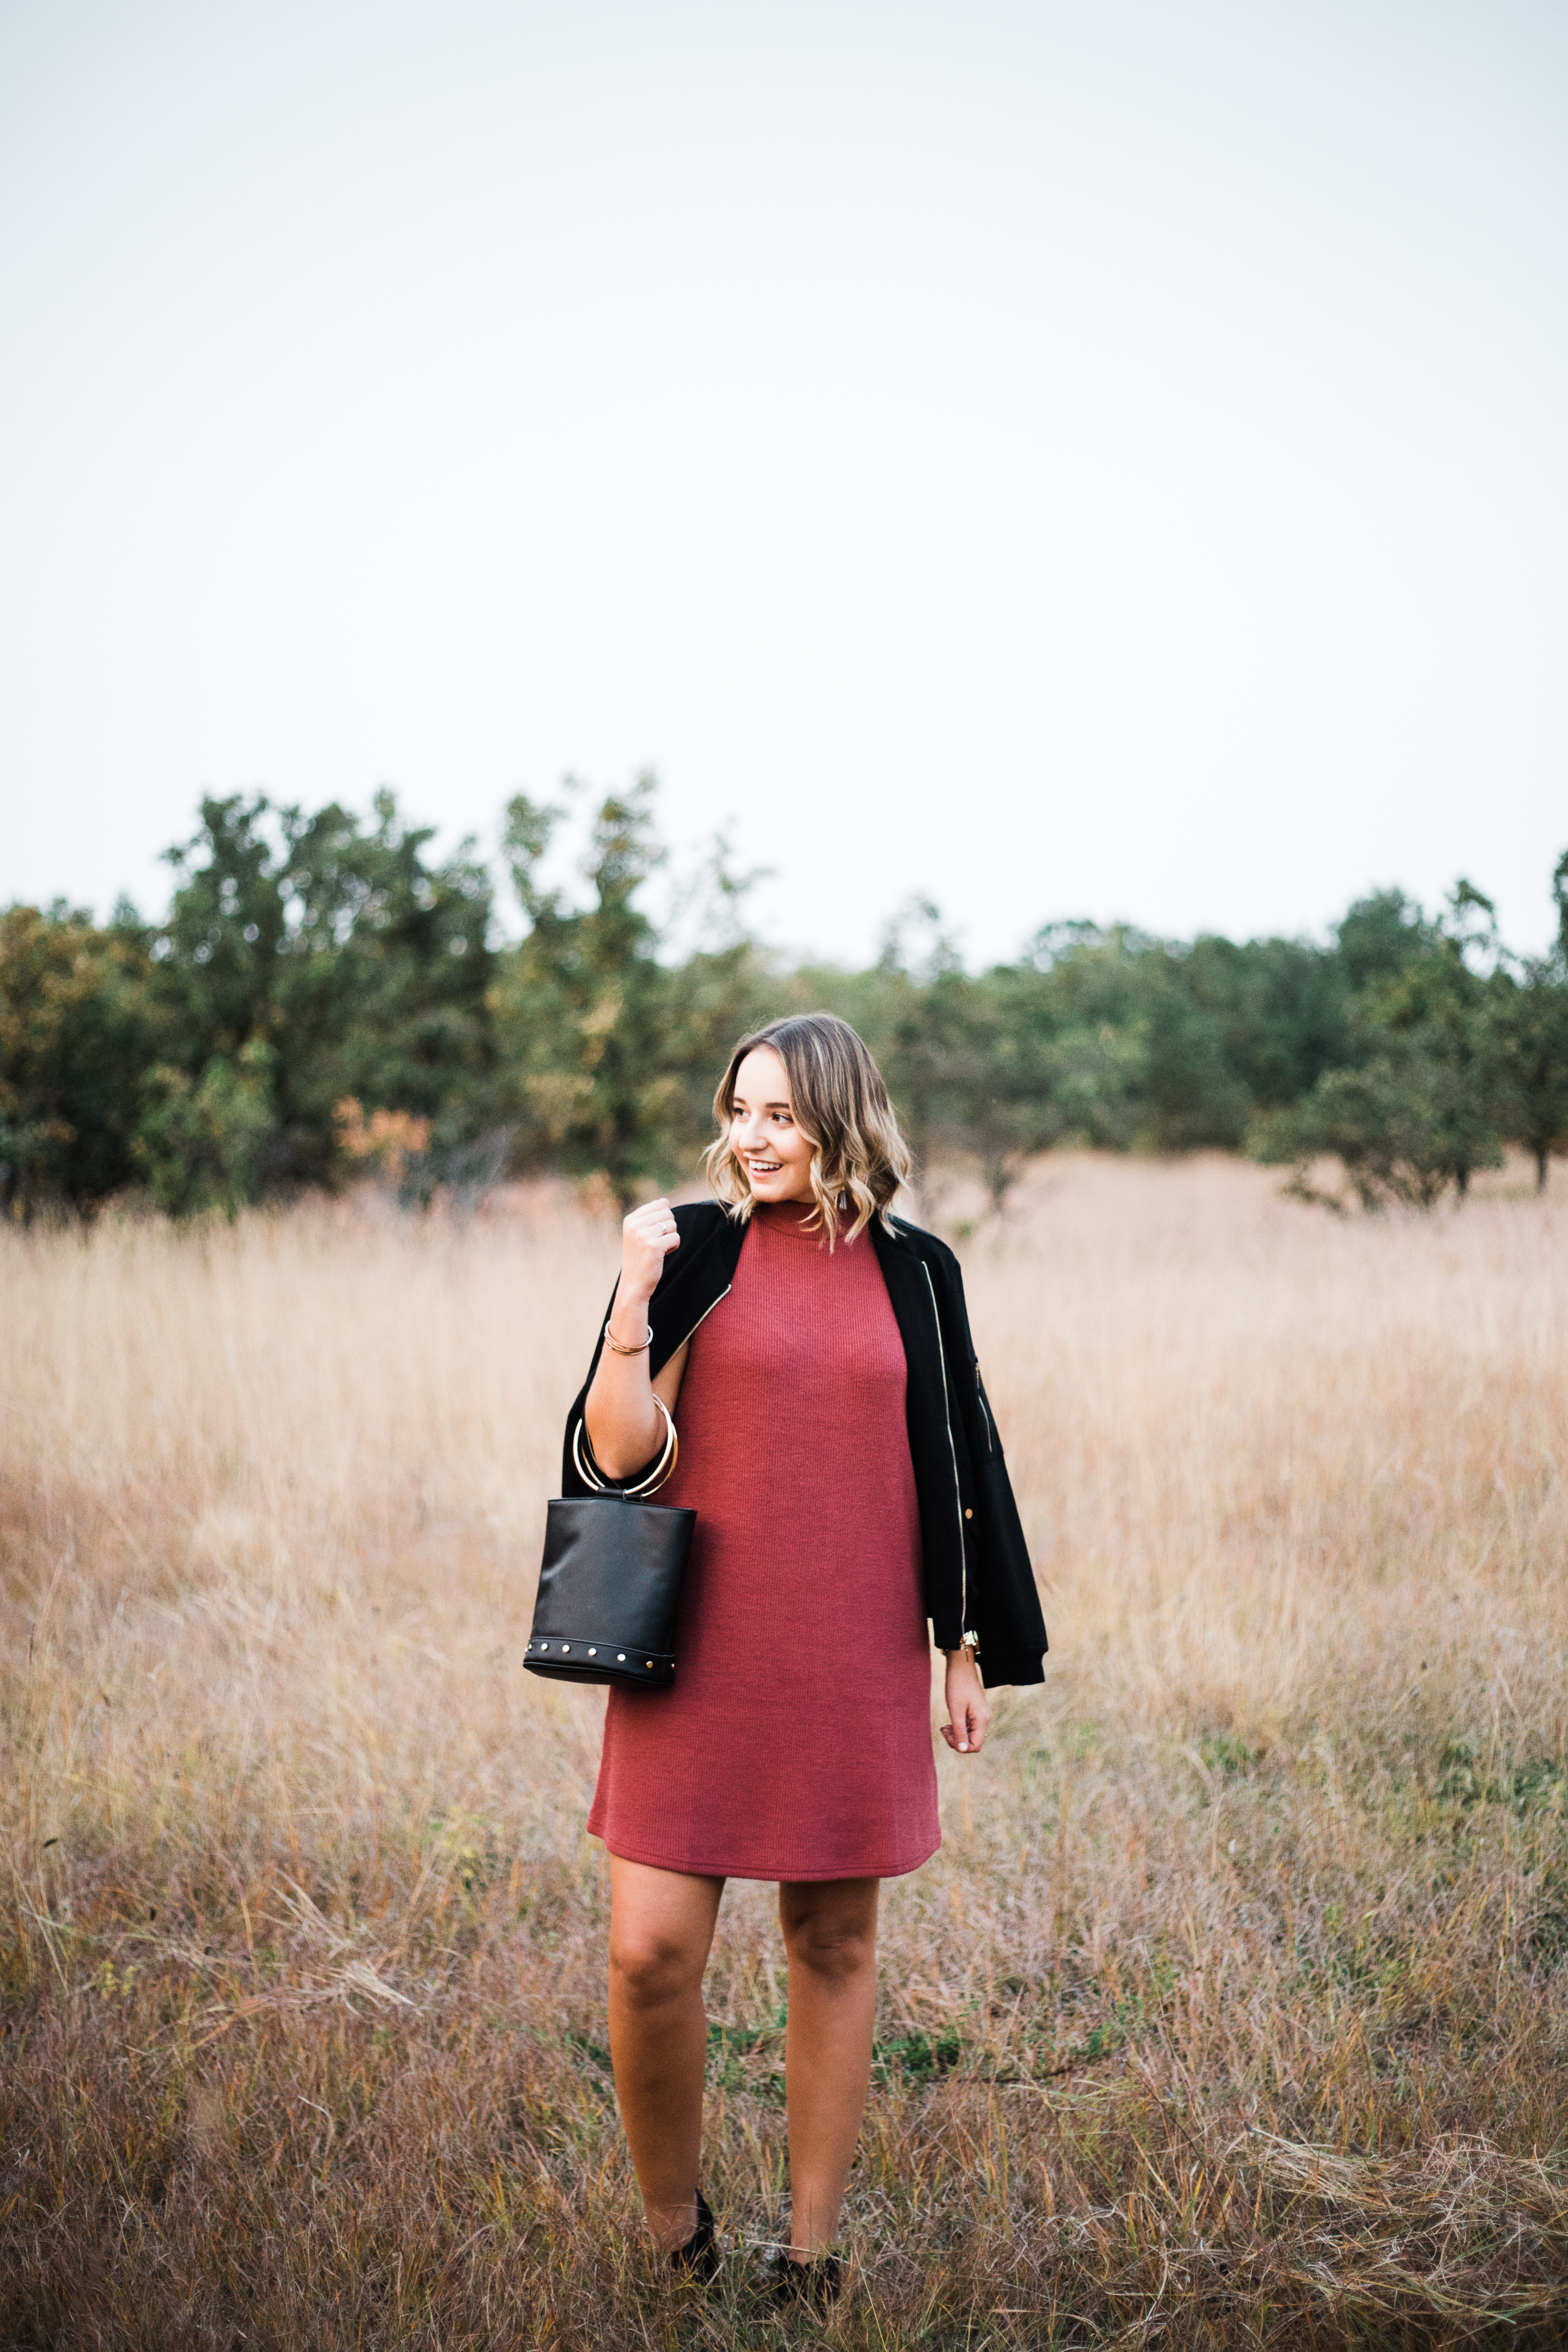 MAD ABOUT (FALL) STYLE